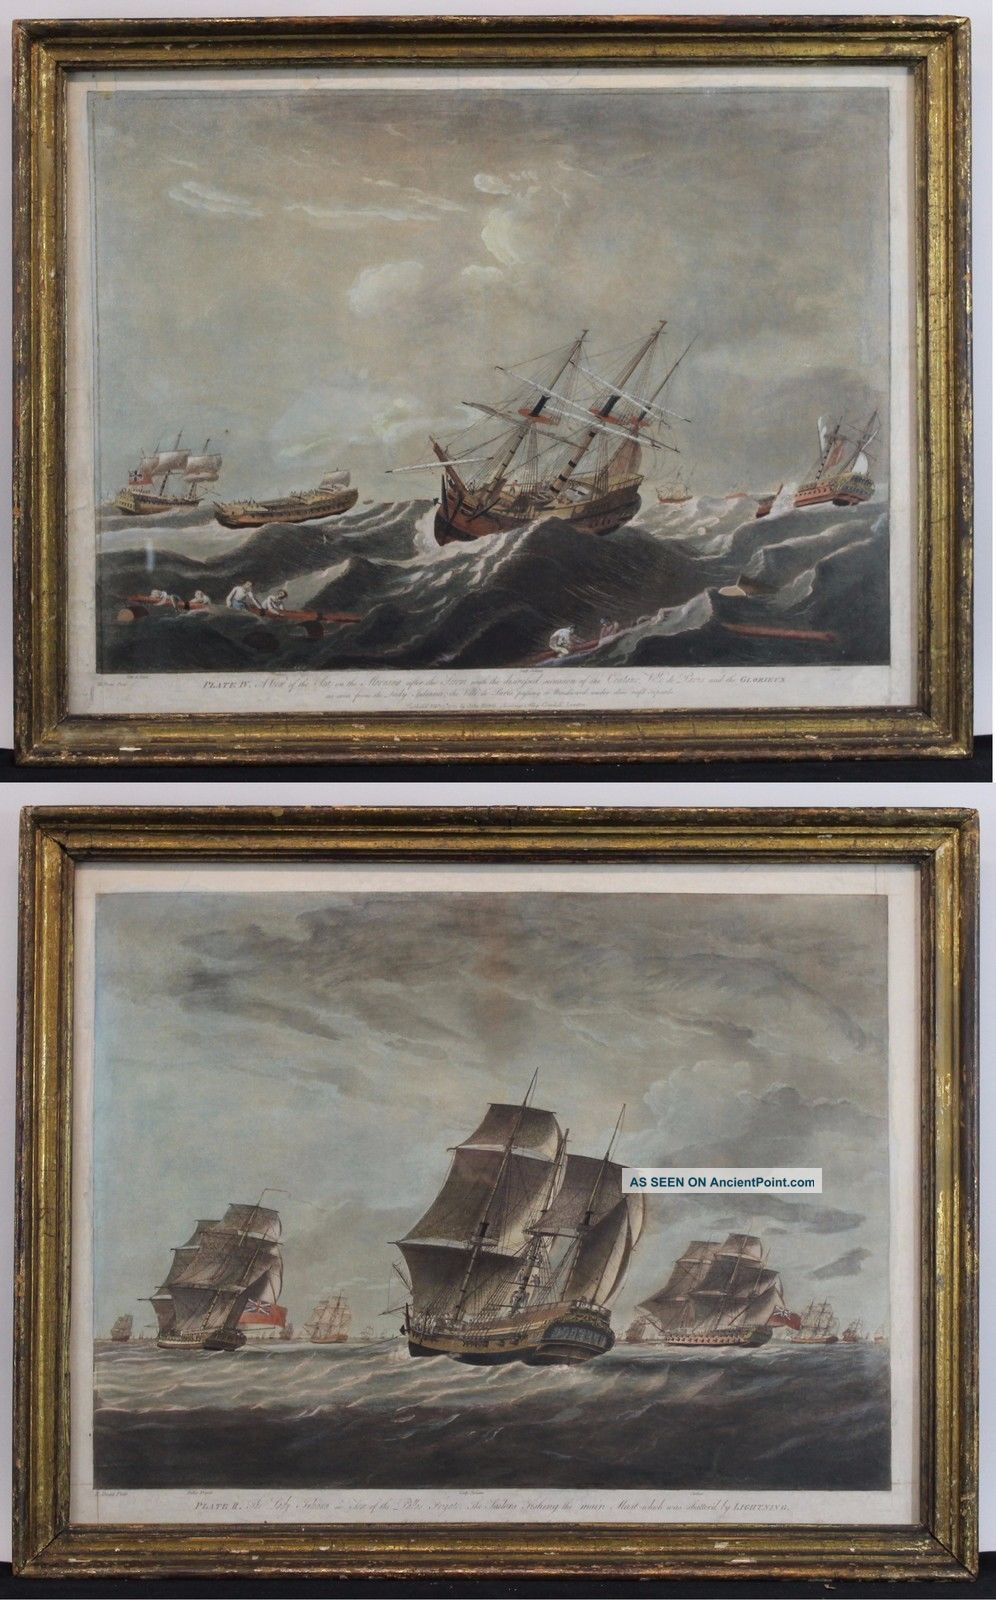 2 Antique 18thc English Maritime John Harris Ship Hand Colored Engravings,  Nr Other Maritime Antiques photo